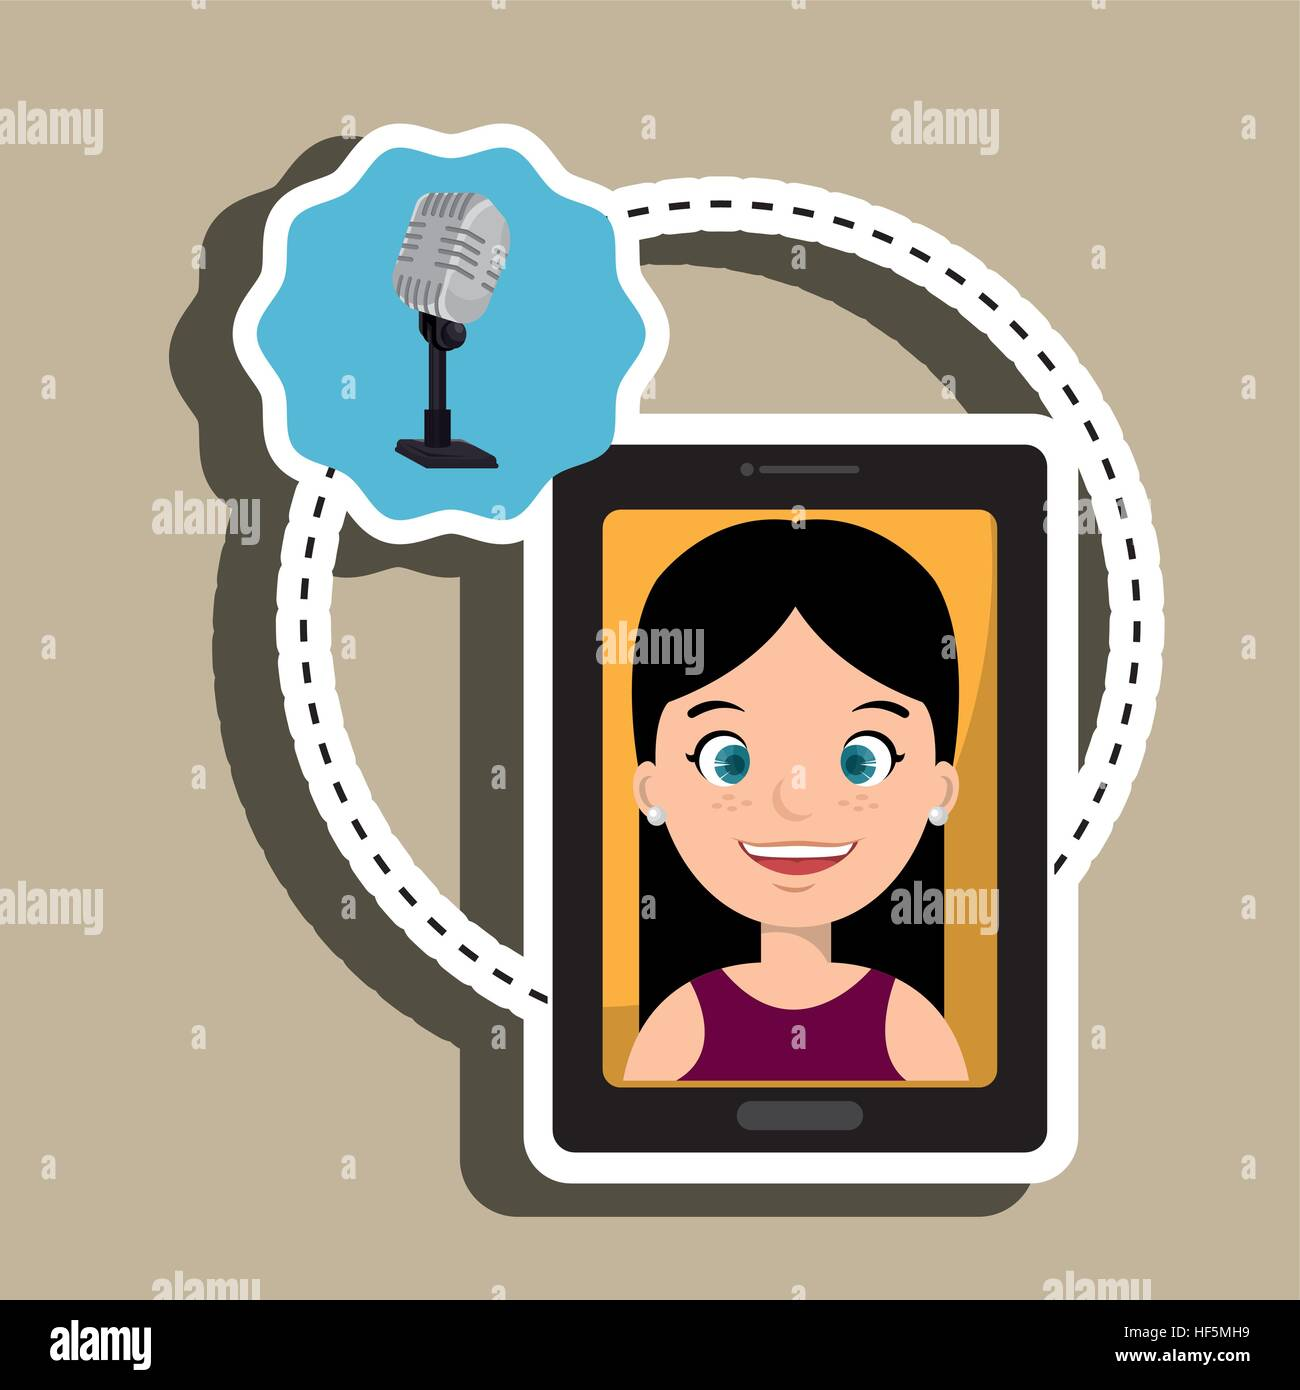 woman cartoon smartphone microphone red background vector illustration eps 10 Stock Vector